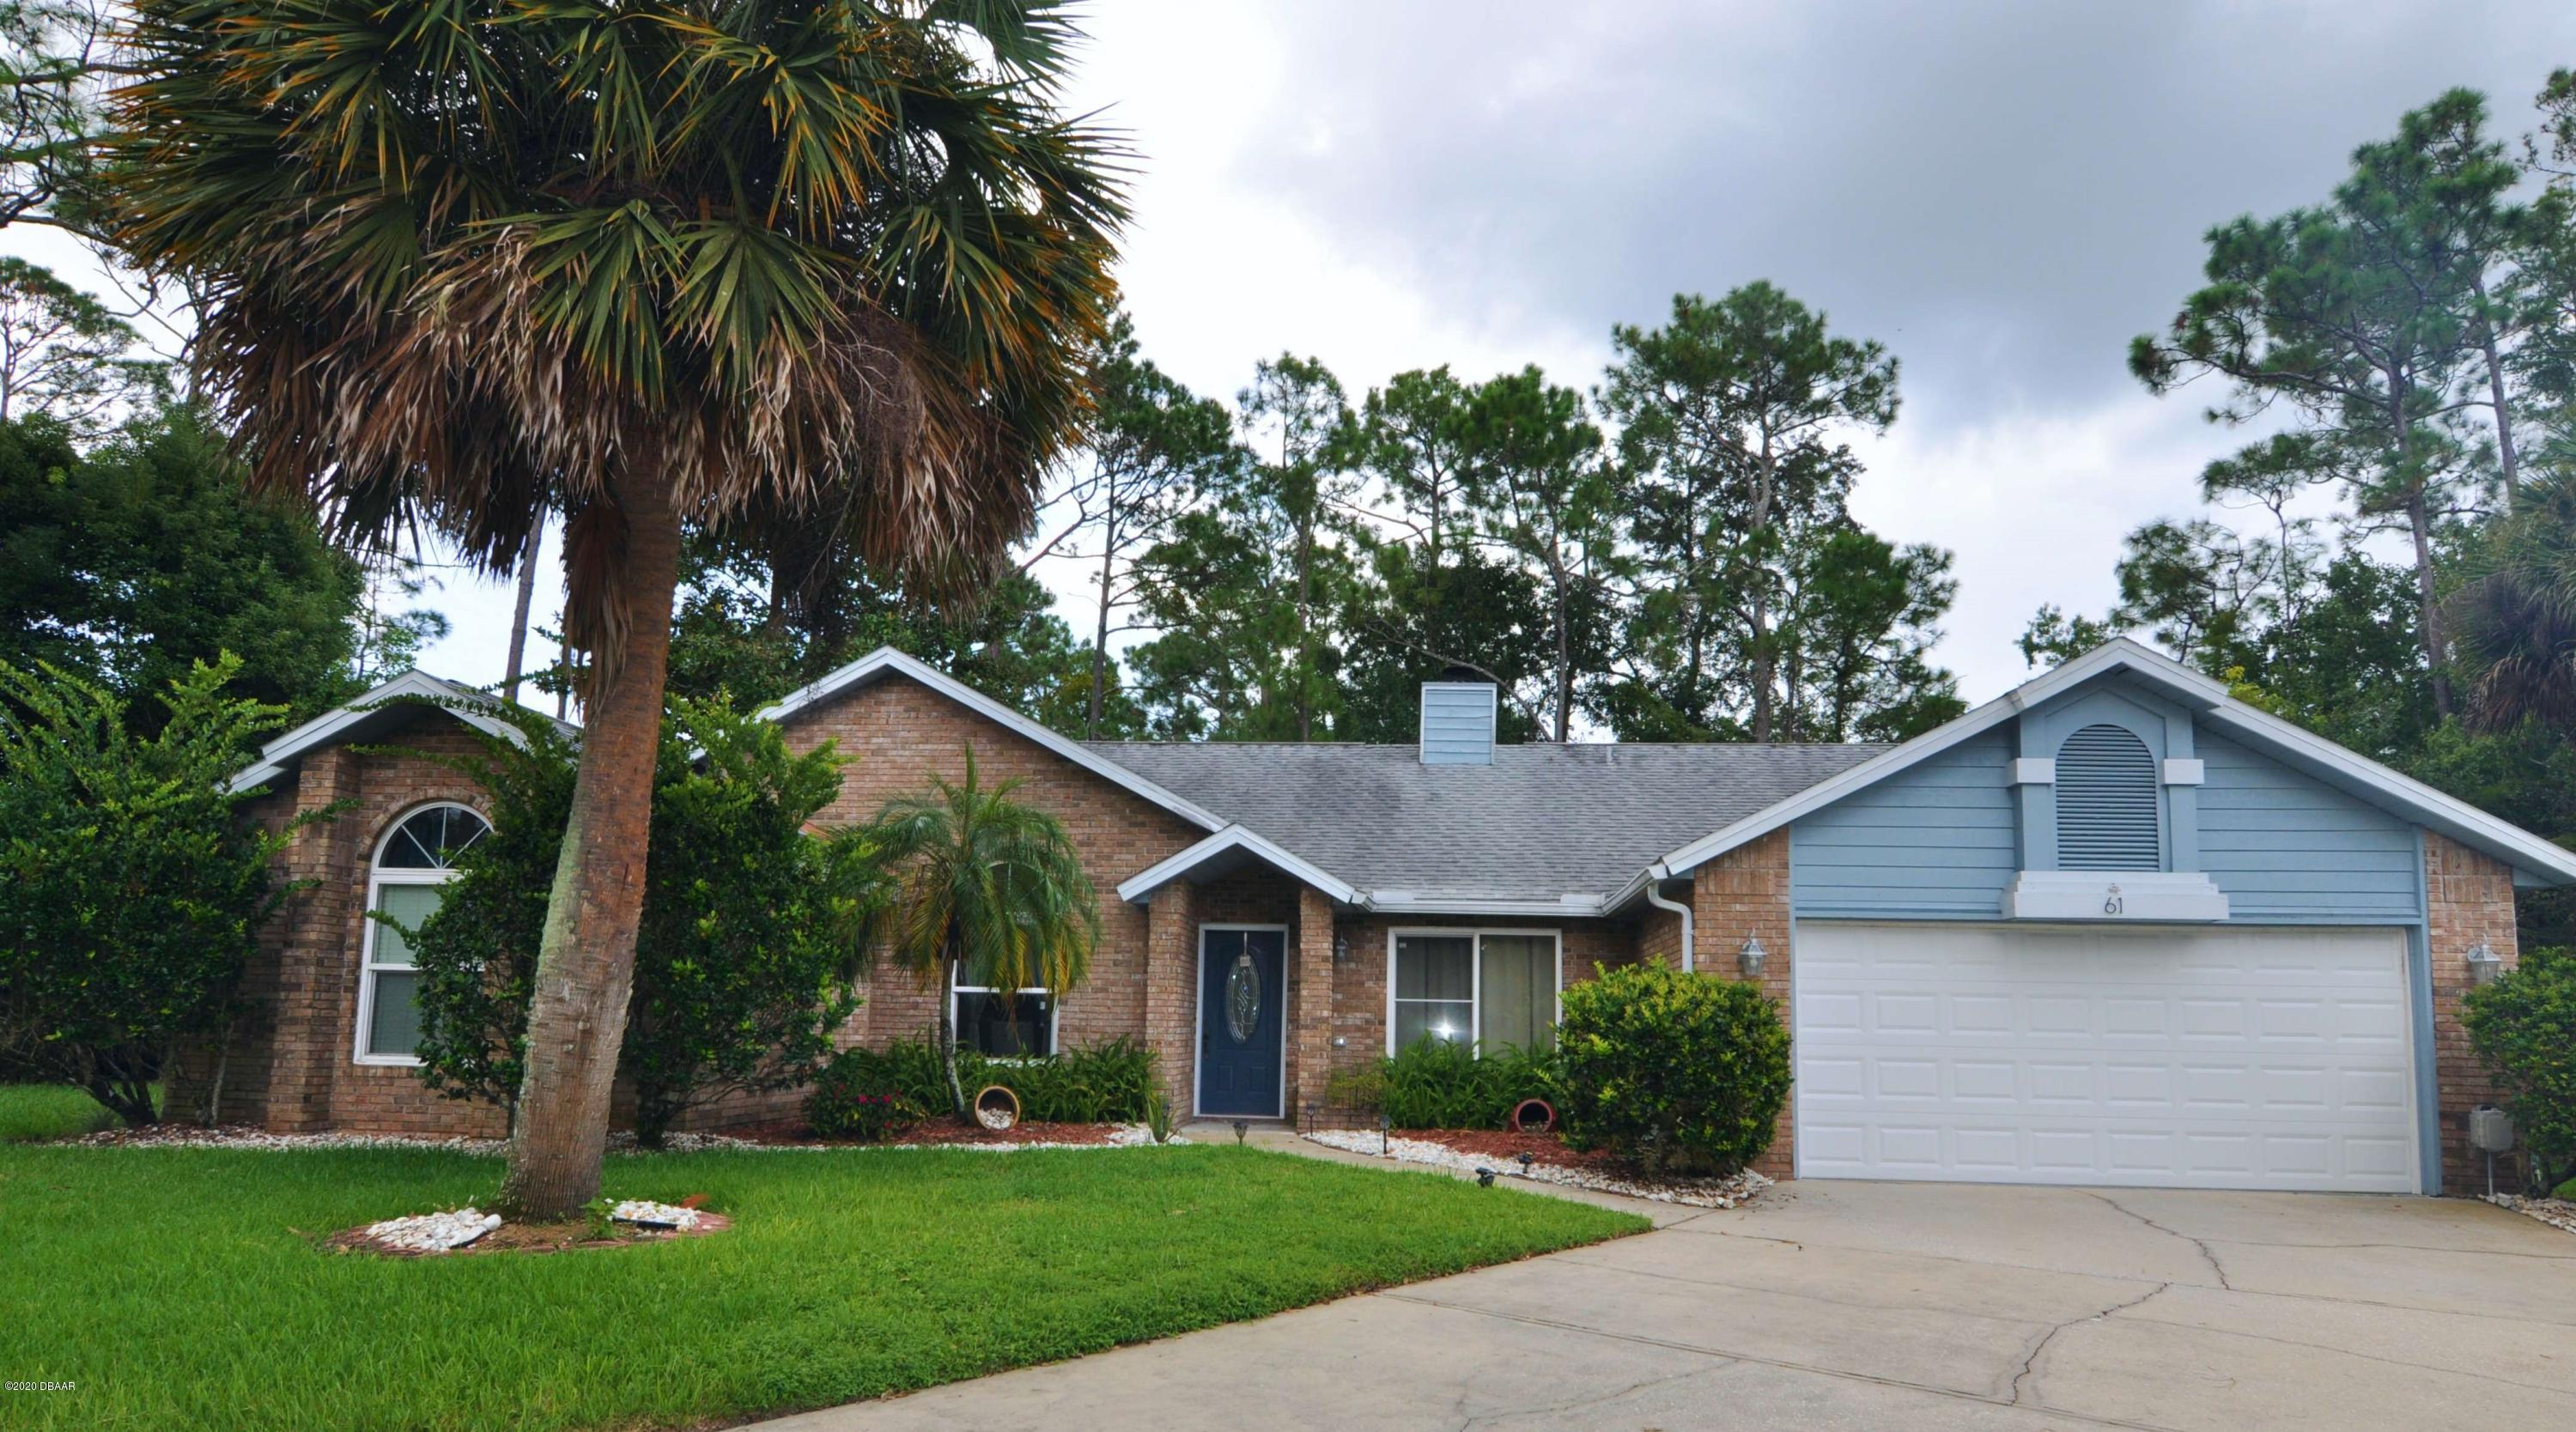 Details for 61 Carriage Creek Way, Ormond Beach, FL 32174